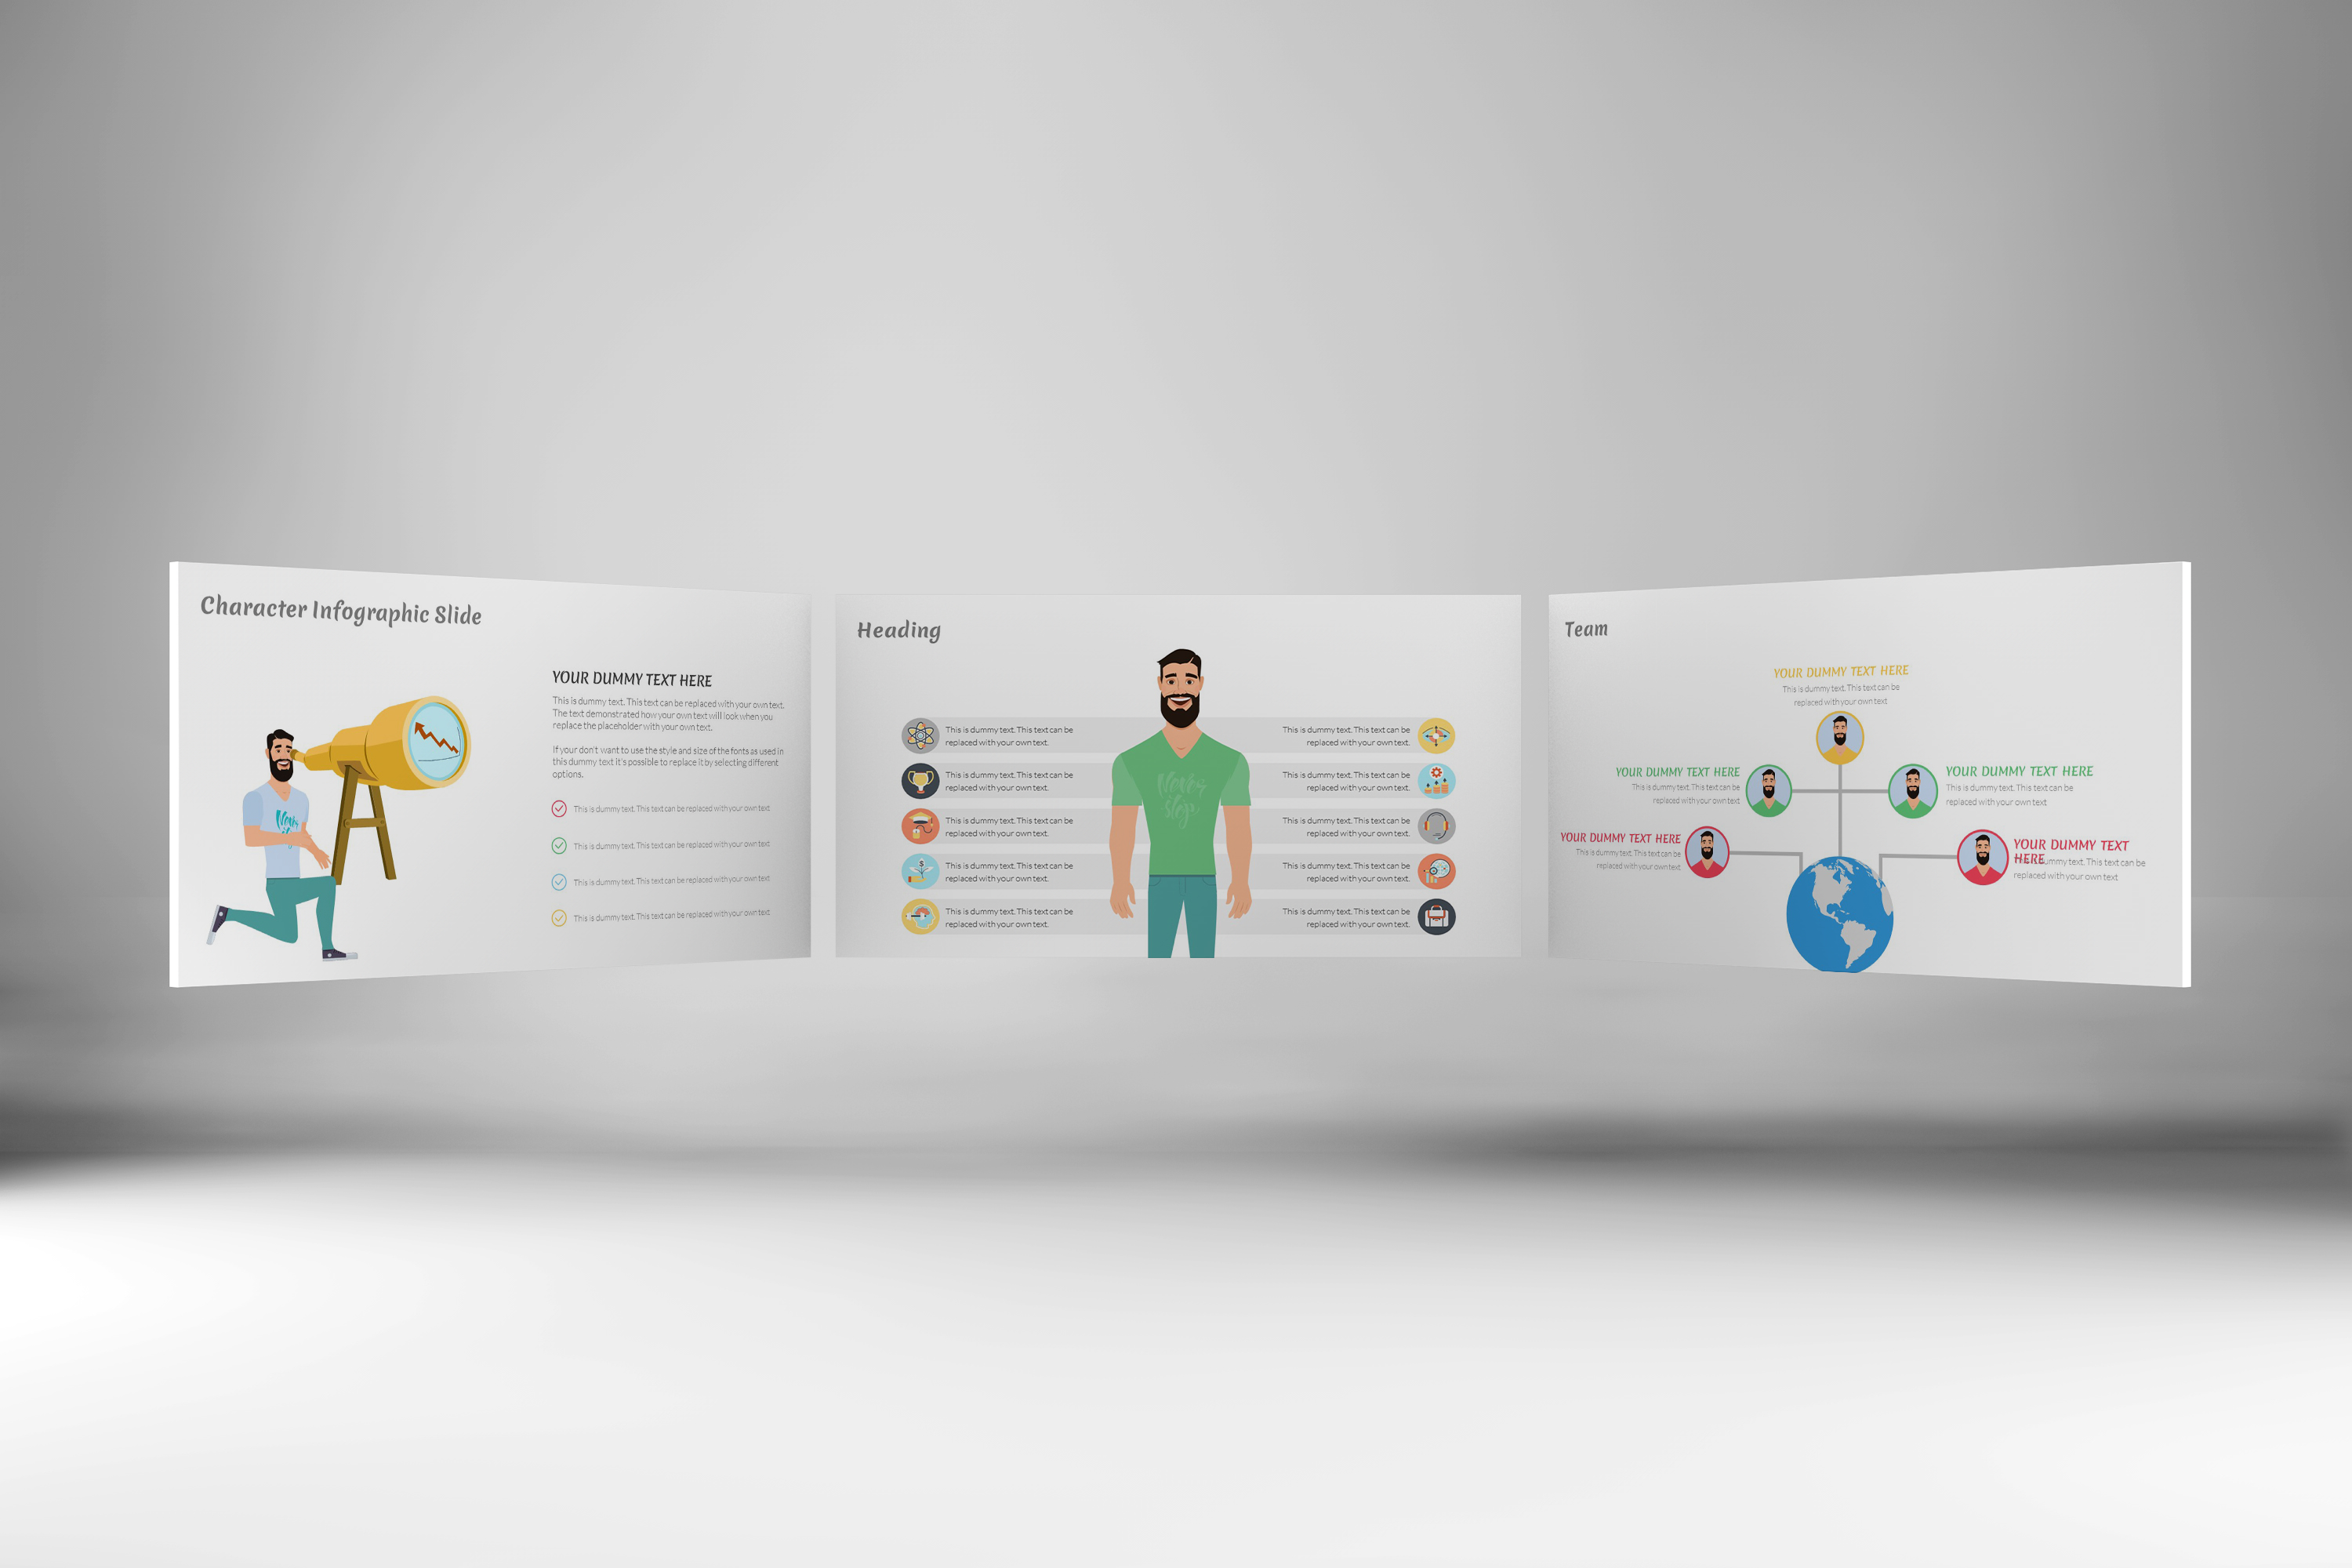 E-Trainer PowerPoint Template 1 example image 6